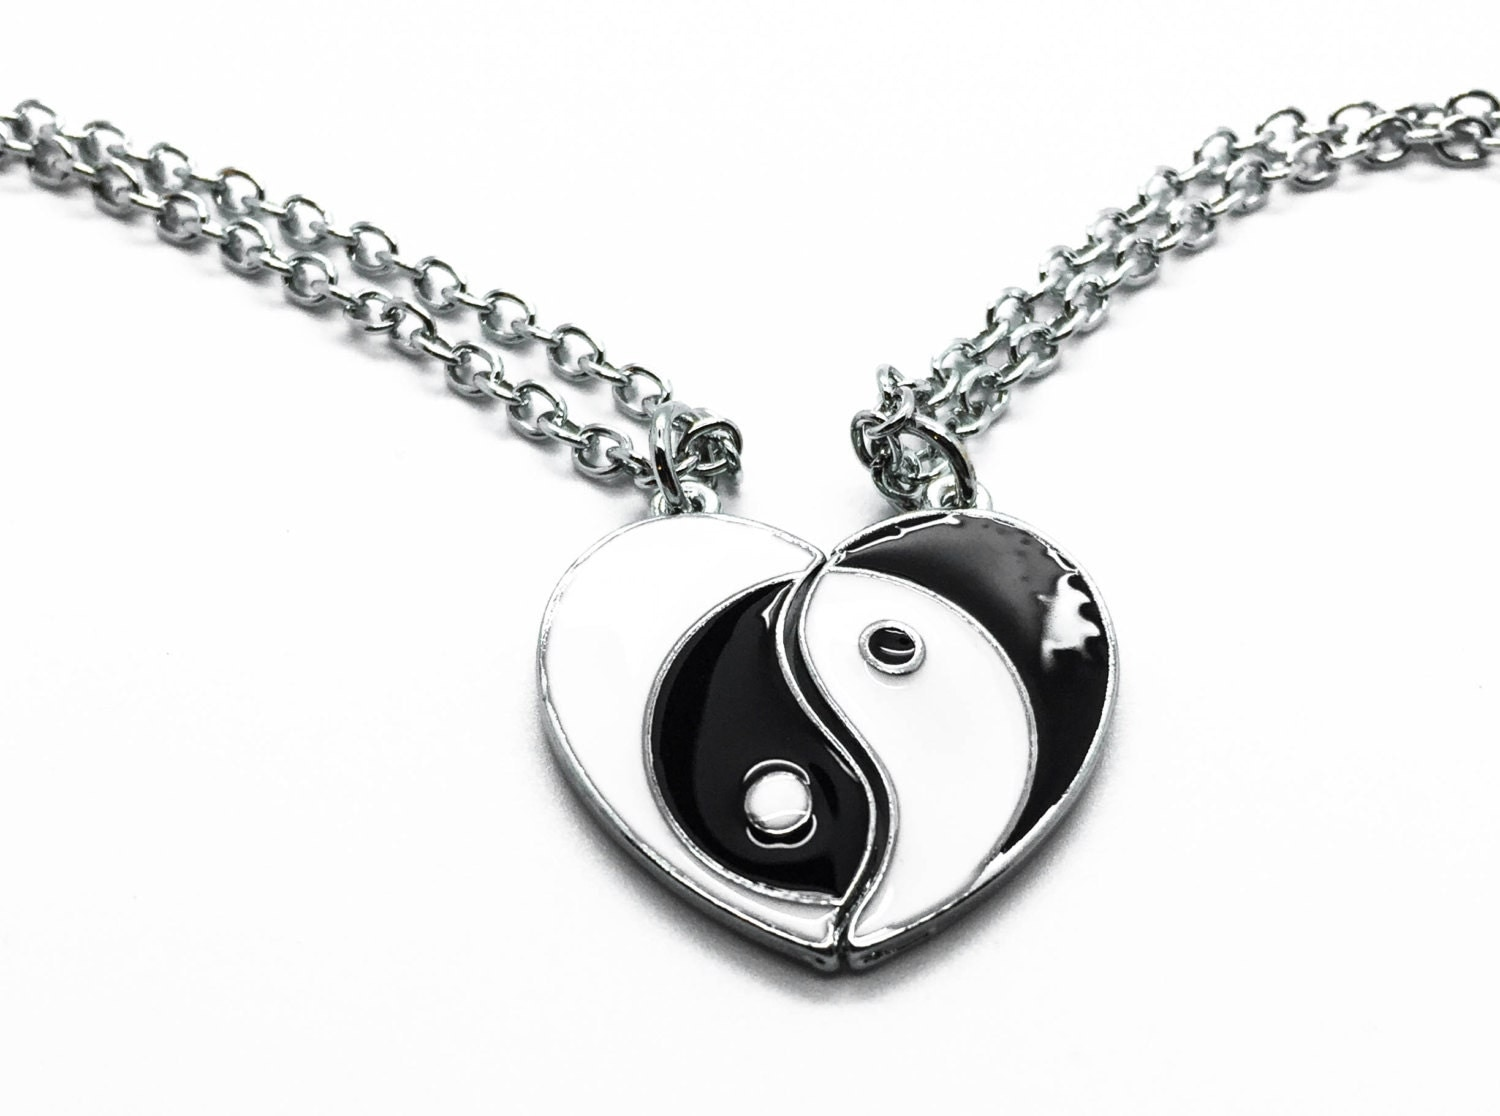 yin yang necklace bff necklace best friend necklace yin by